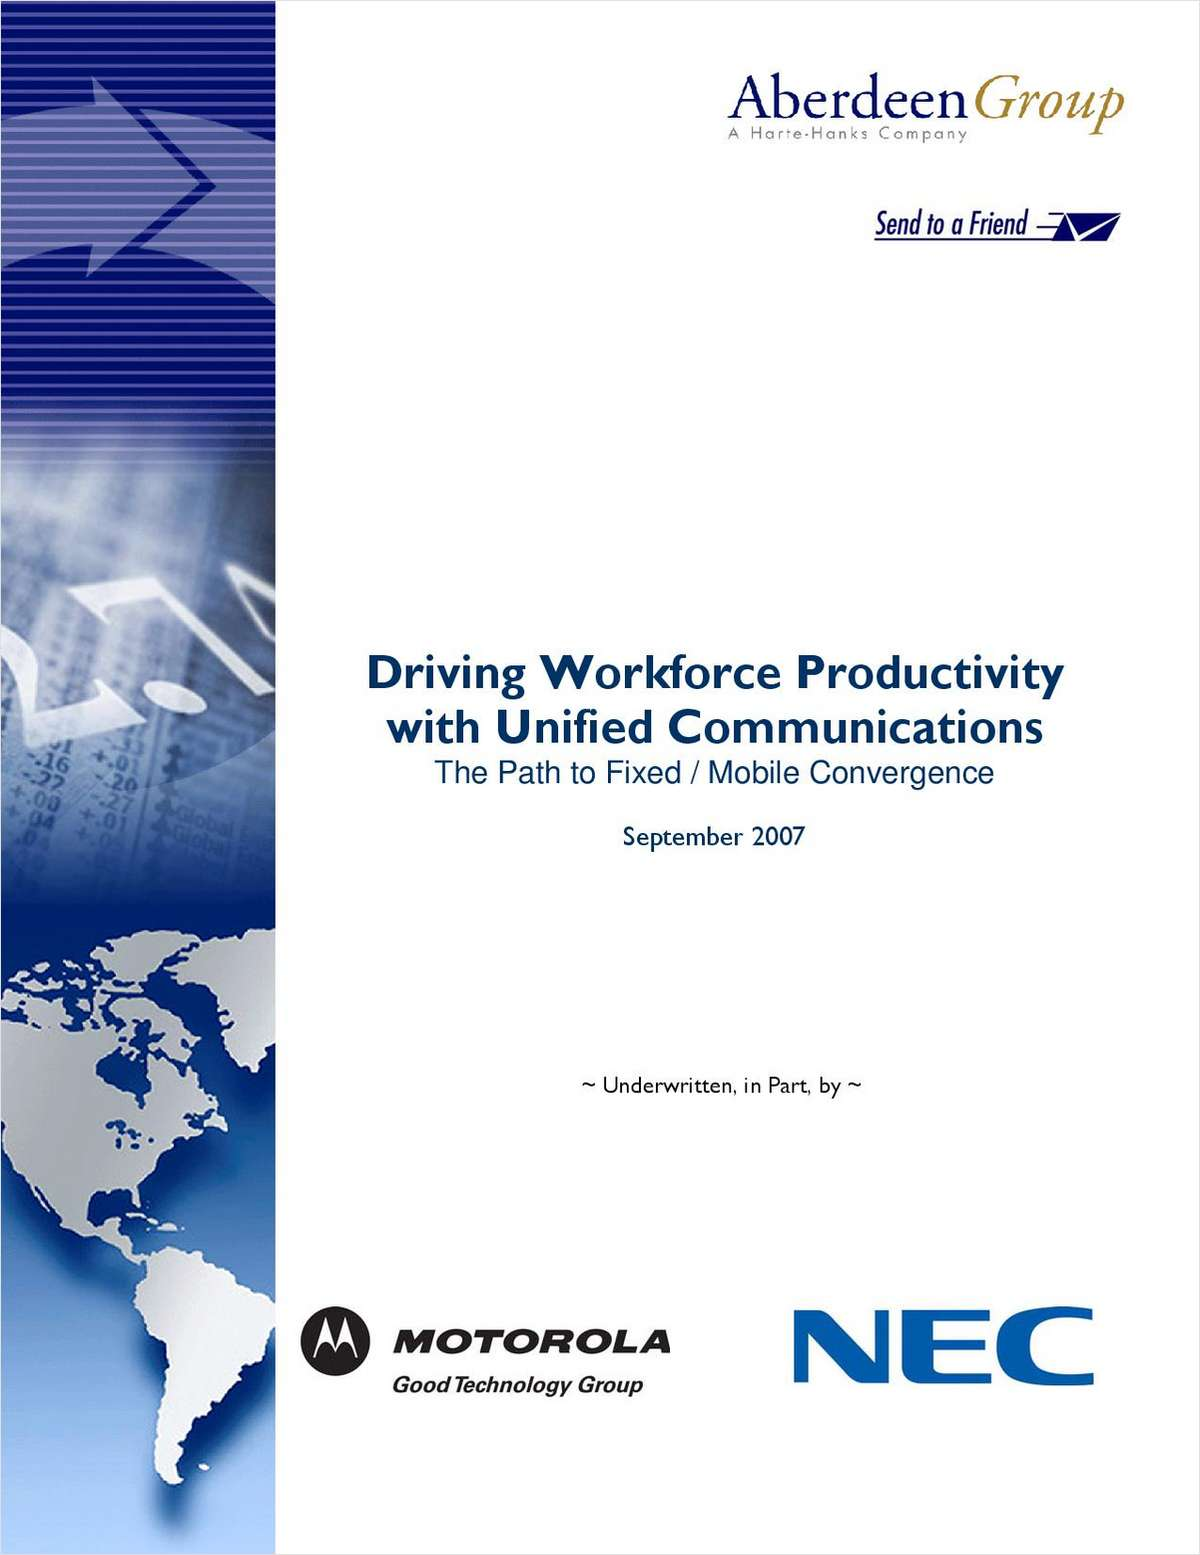 Driving Workforce Productivity with Unified Communications: The Path to Fixed / Mobile Convergence